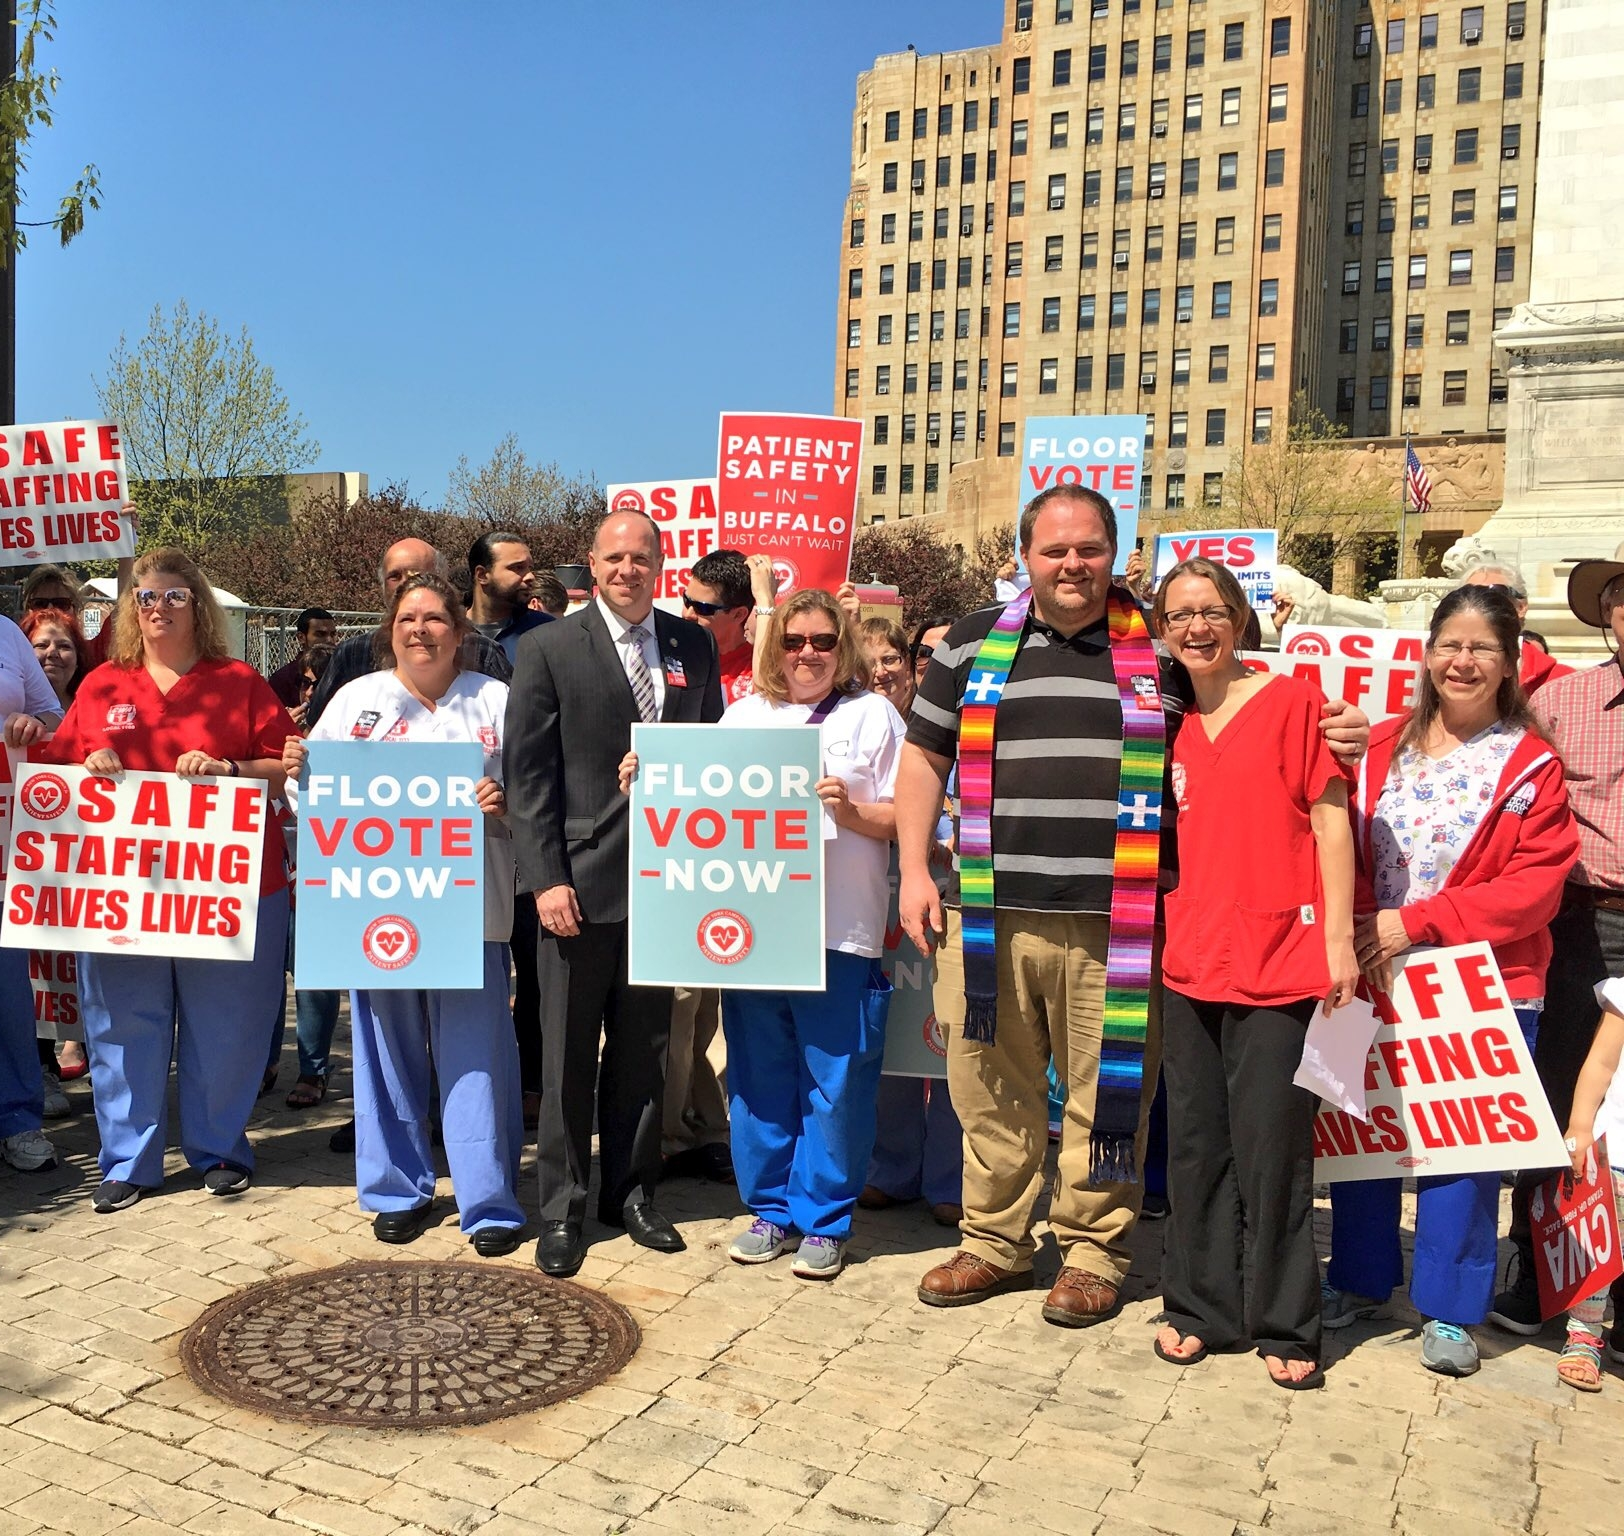 - Tim was inspired to become an occupational therapist after watching his mom work for years as a nurse at Buffalo General, Mercy, and Millard Fillmore Hospitals. Throughout his career, he has focused his efforts on strengthening protections for healthcare workers. He is a cosponsor of a bill to enact Safe Staffing ratios, which would ensure that nurses are able to do their jobs effectively and patients receive the quality care they deserve.